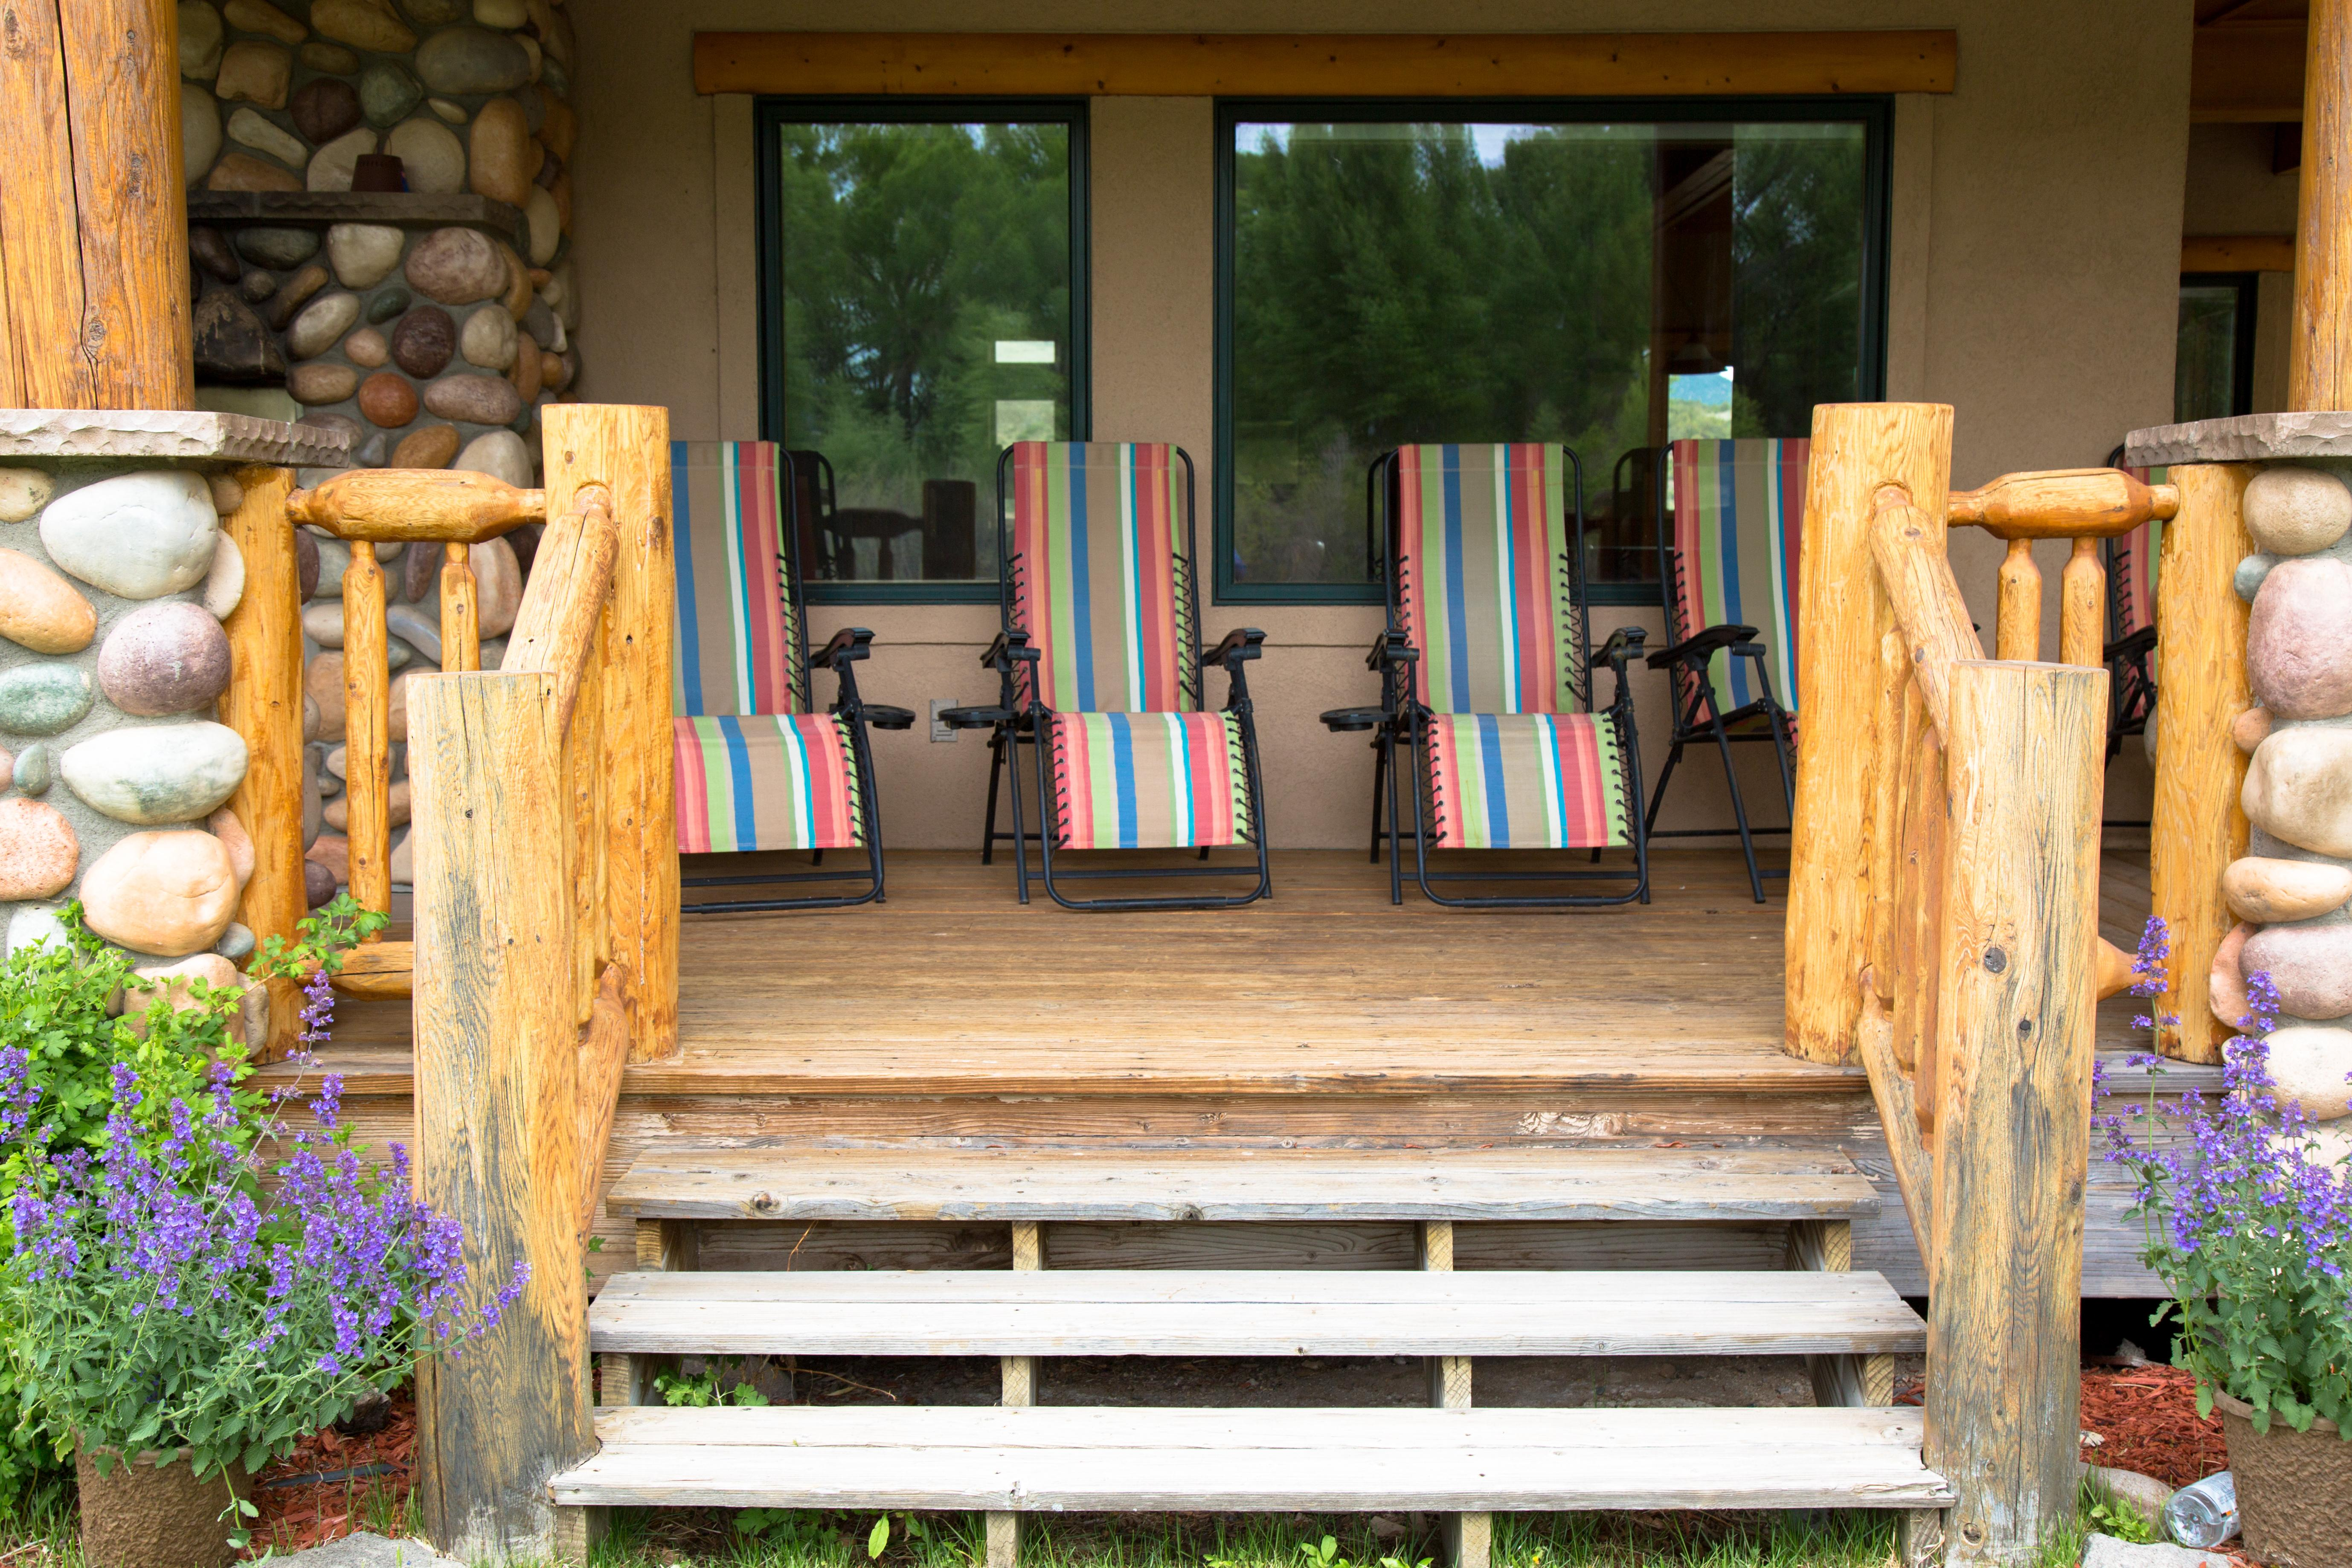 zero gravity chairs lined up on the porch of the fishing lodge